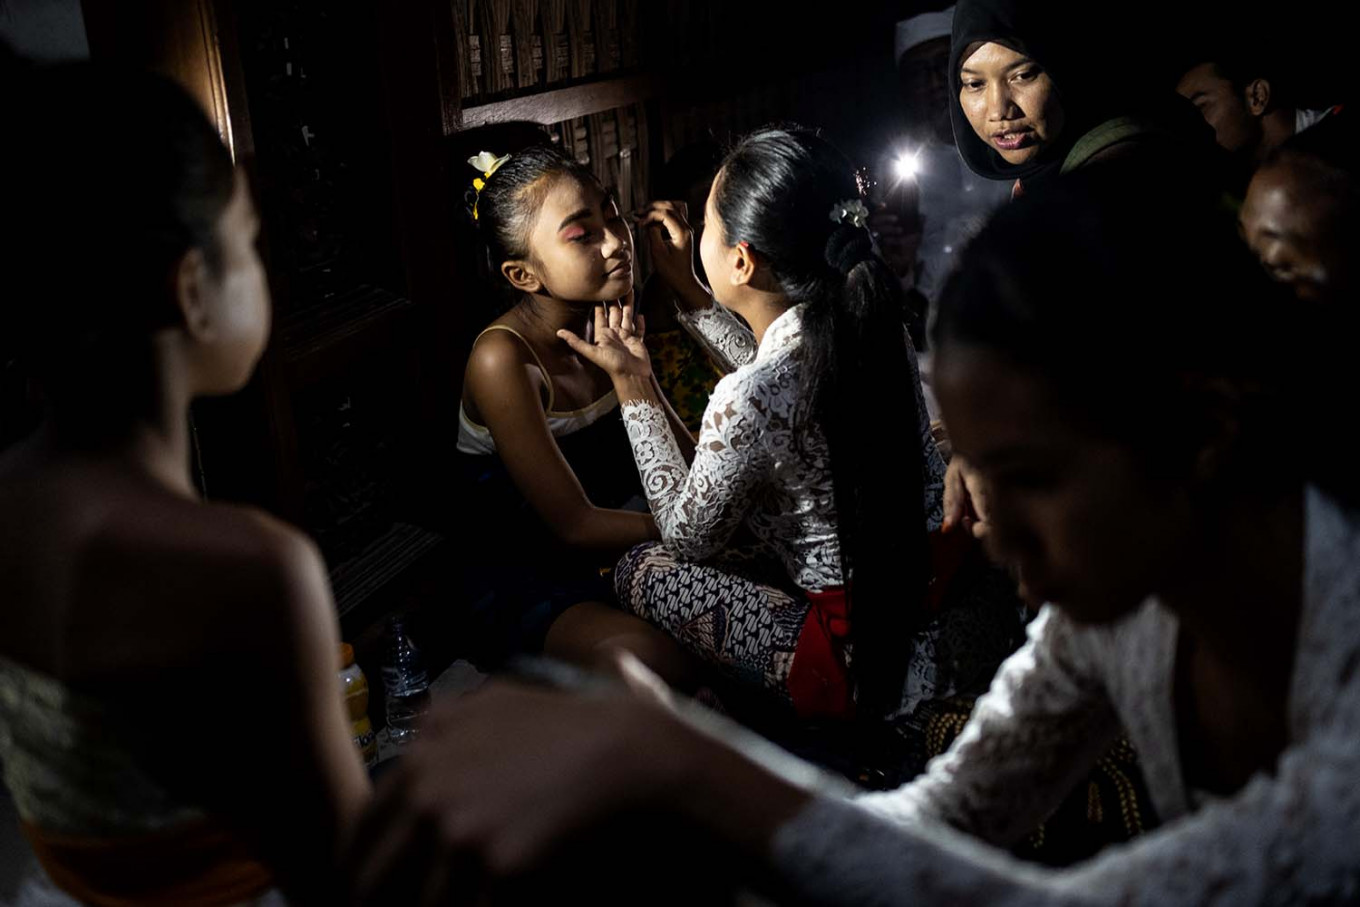 Balinese girls put on makeup as they prepare to perform the Sanghyang Dedari dance during the Api Wali Bhatara Sri ritual to honor the goddess of prosperity before the harvest time in Geriana Kauh village, Selat Duda, Karangasem regency.  JP/Agung Parameswara